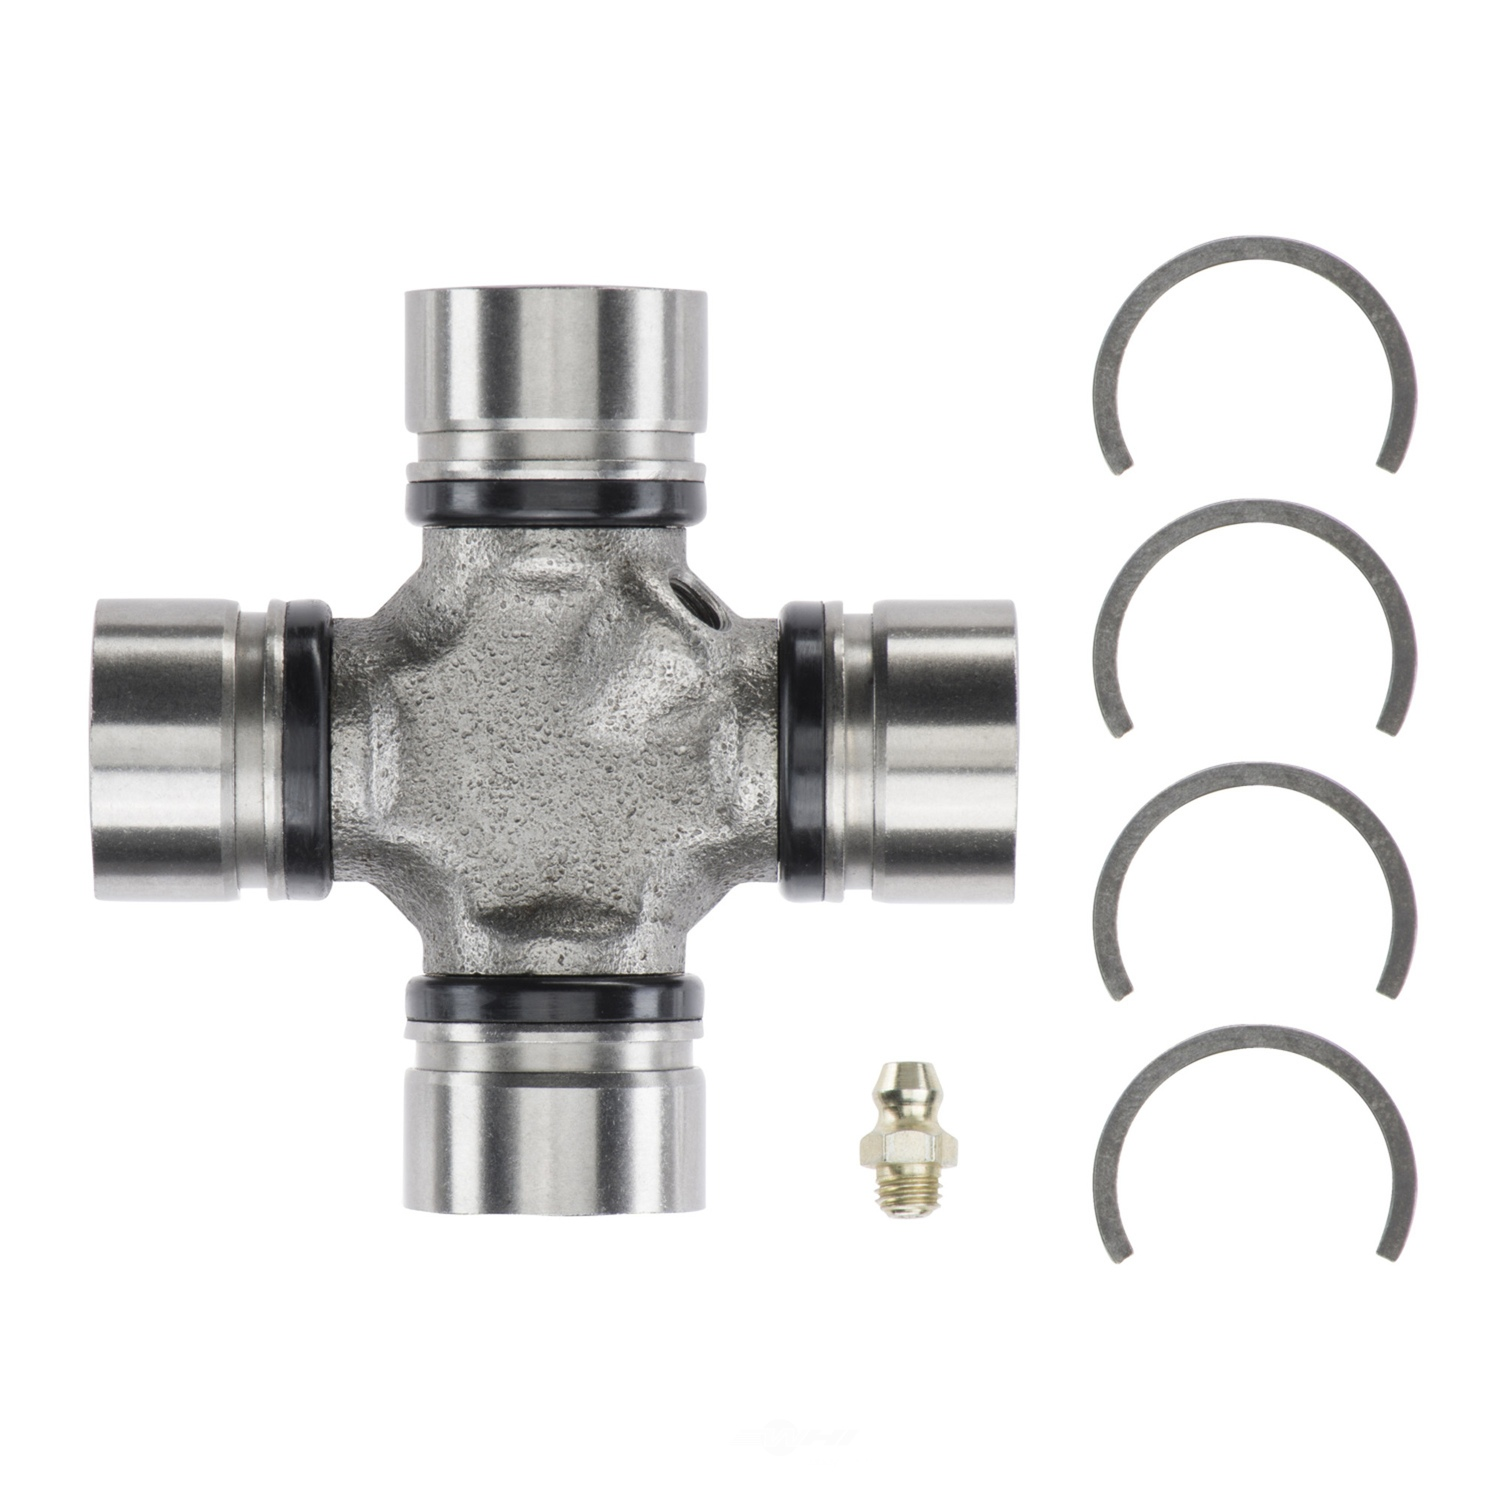 MOOG DRIVELINE PRODUCTS - Universal Joint - MDP 315G